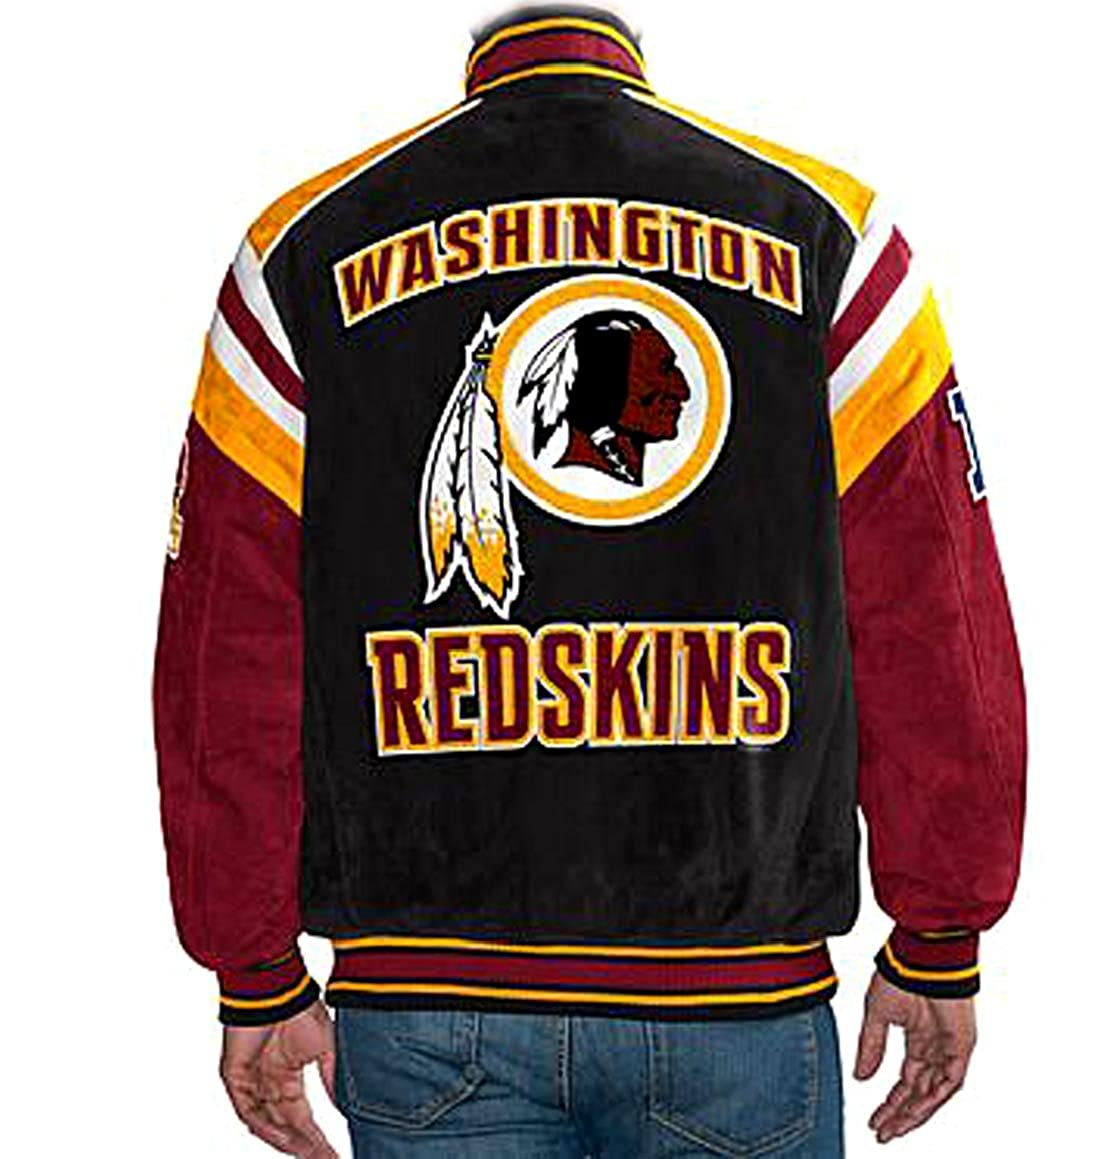 watch aa791 856f4 Washington Redskins NFL Suede Leather Jacket